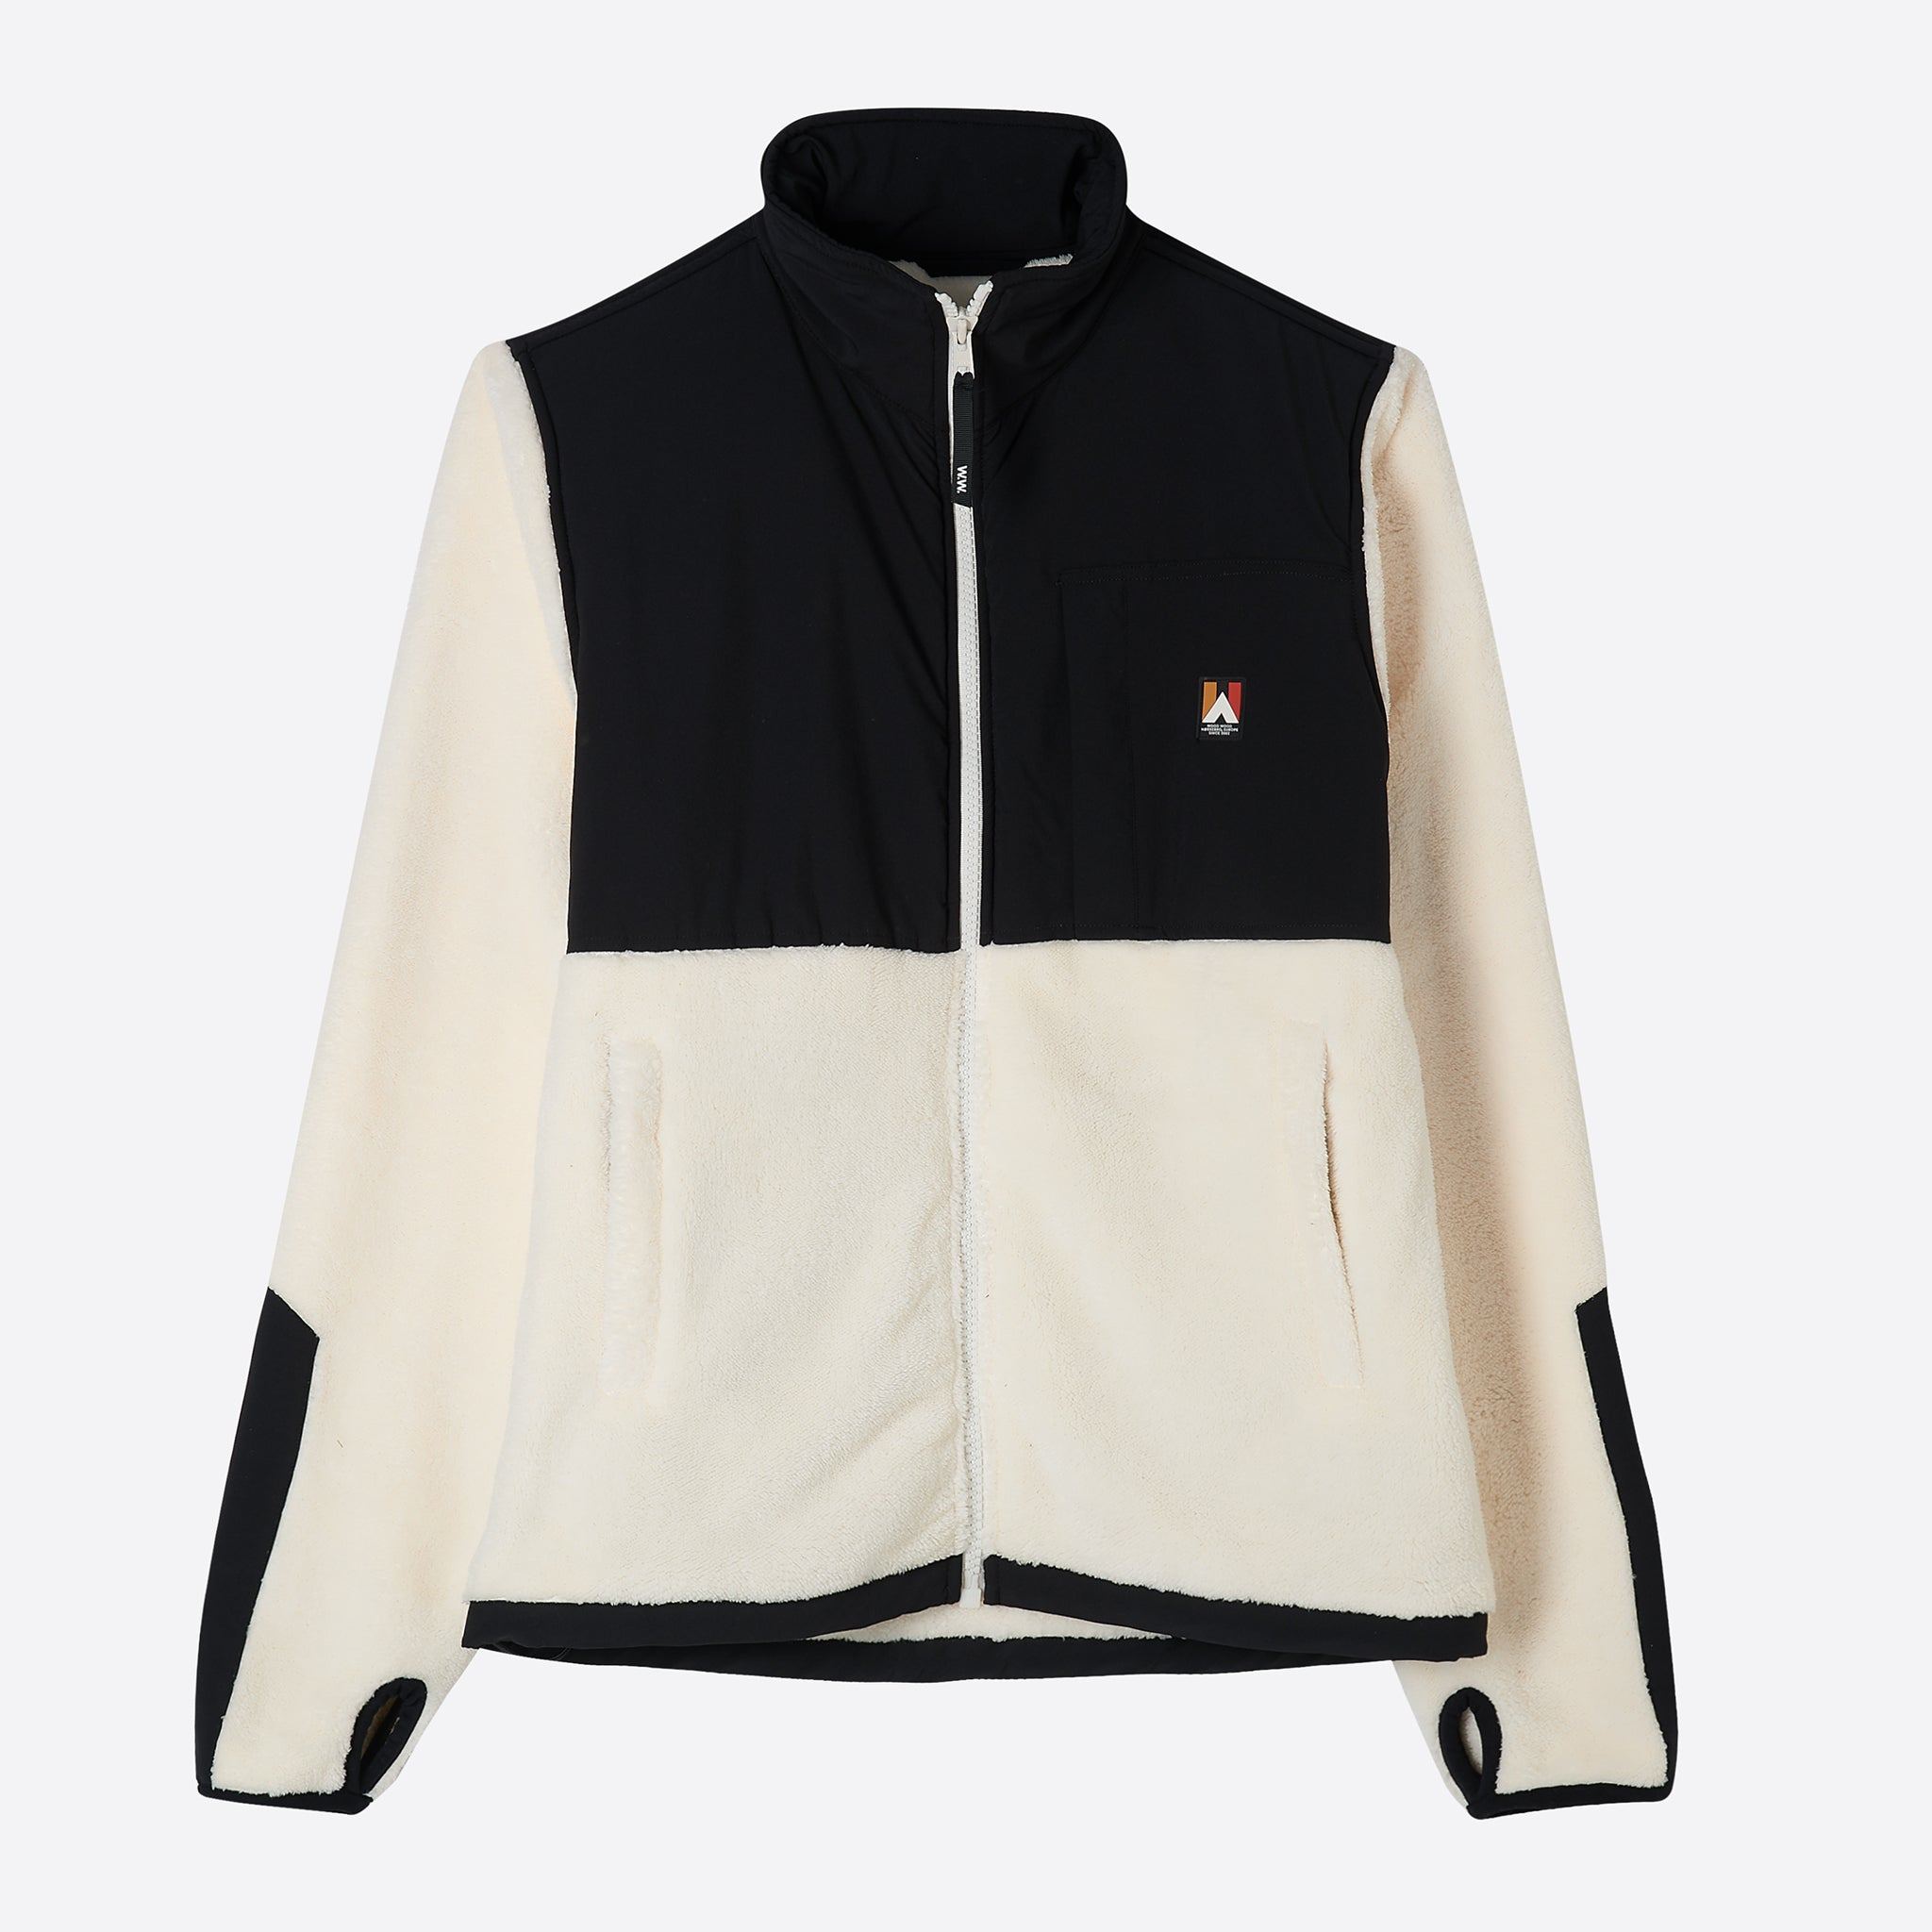 Wood Wood Hannes Jacket in Off White